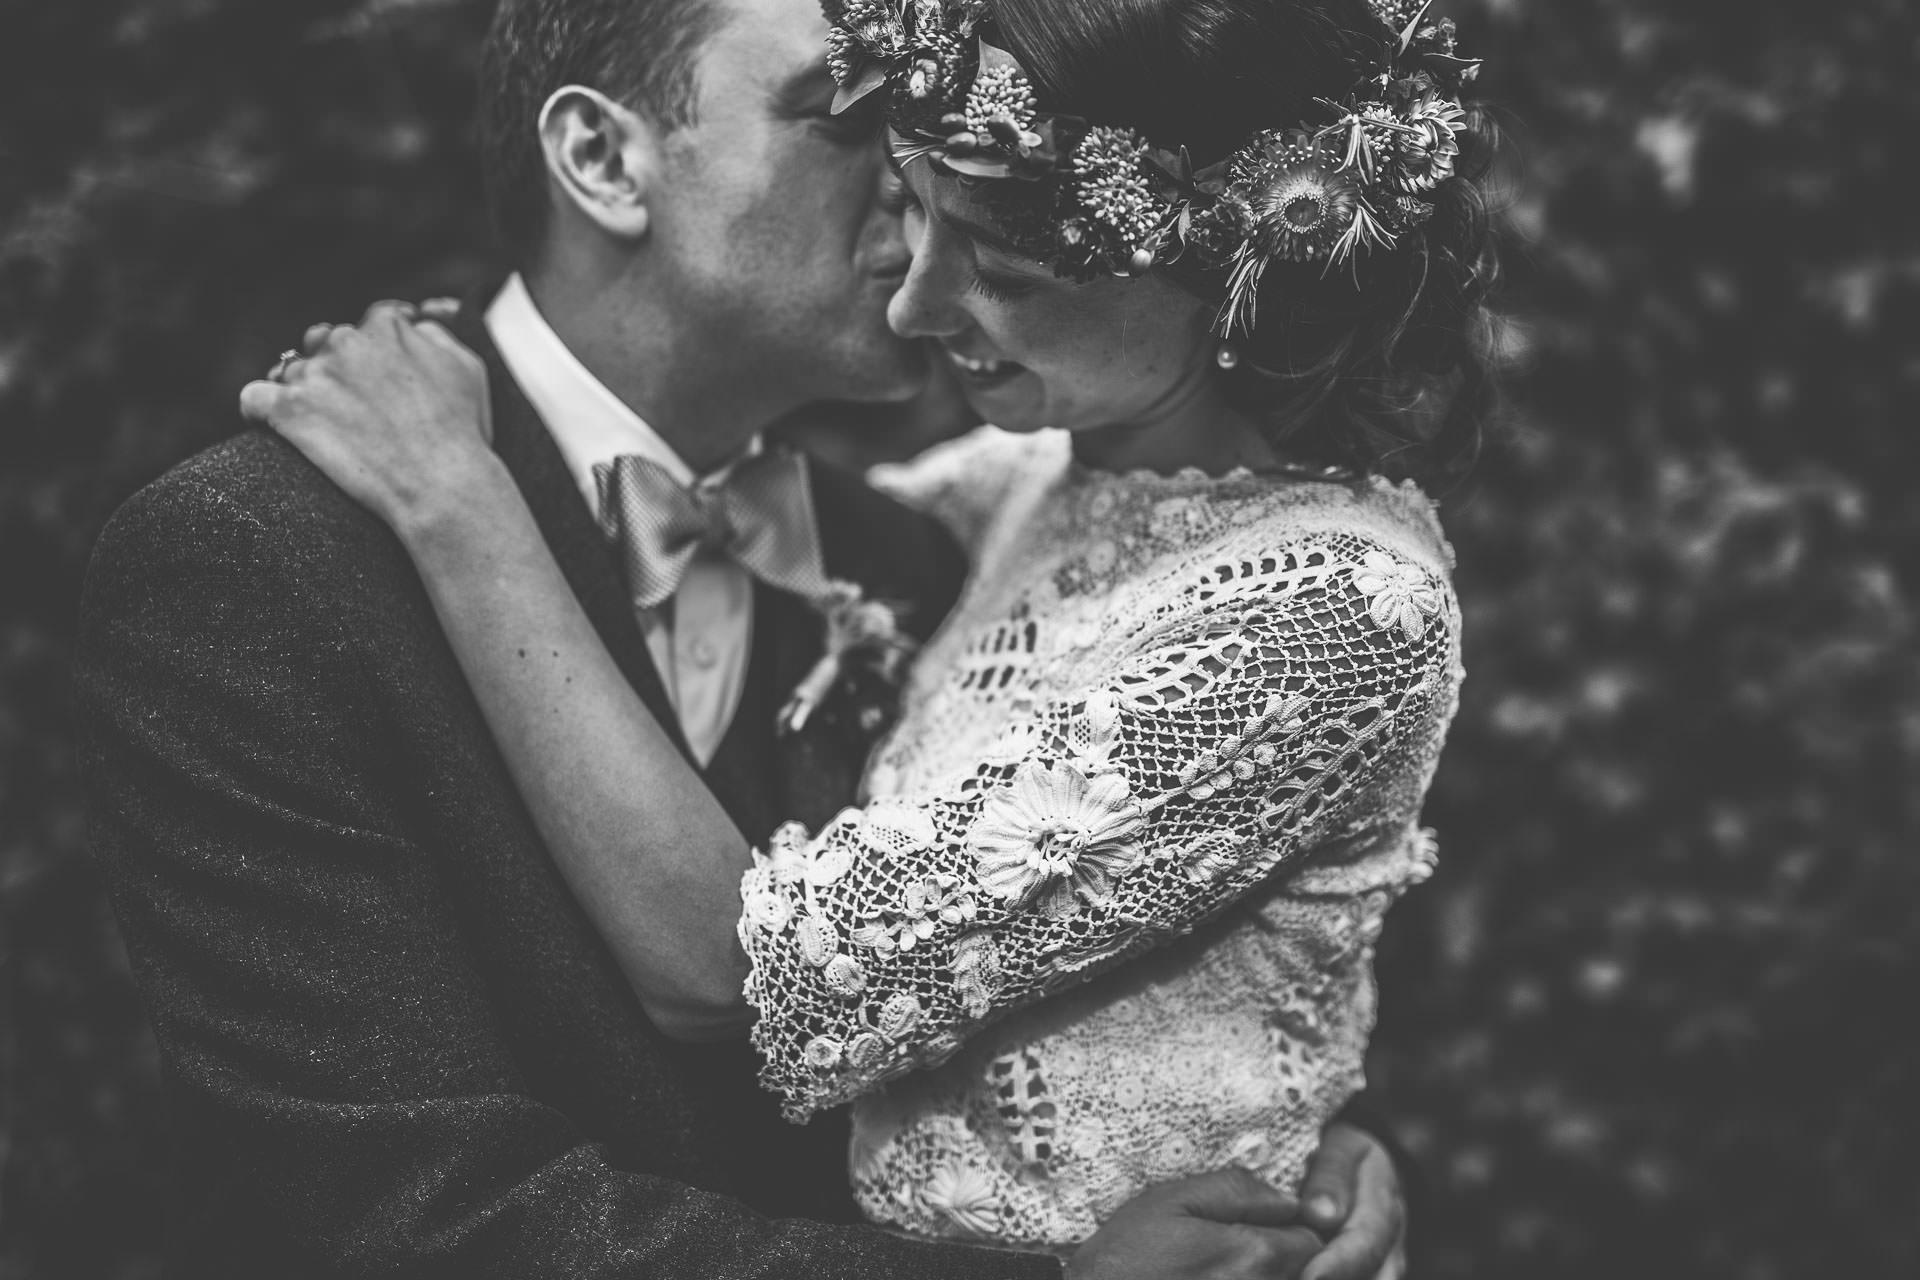 Winterbourne Medieval Barn Wedding Photography - Emma & Andrew - black and white portrait of couple